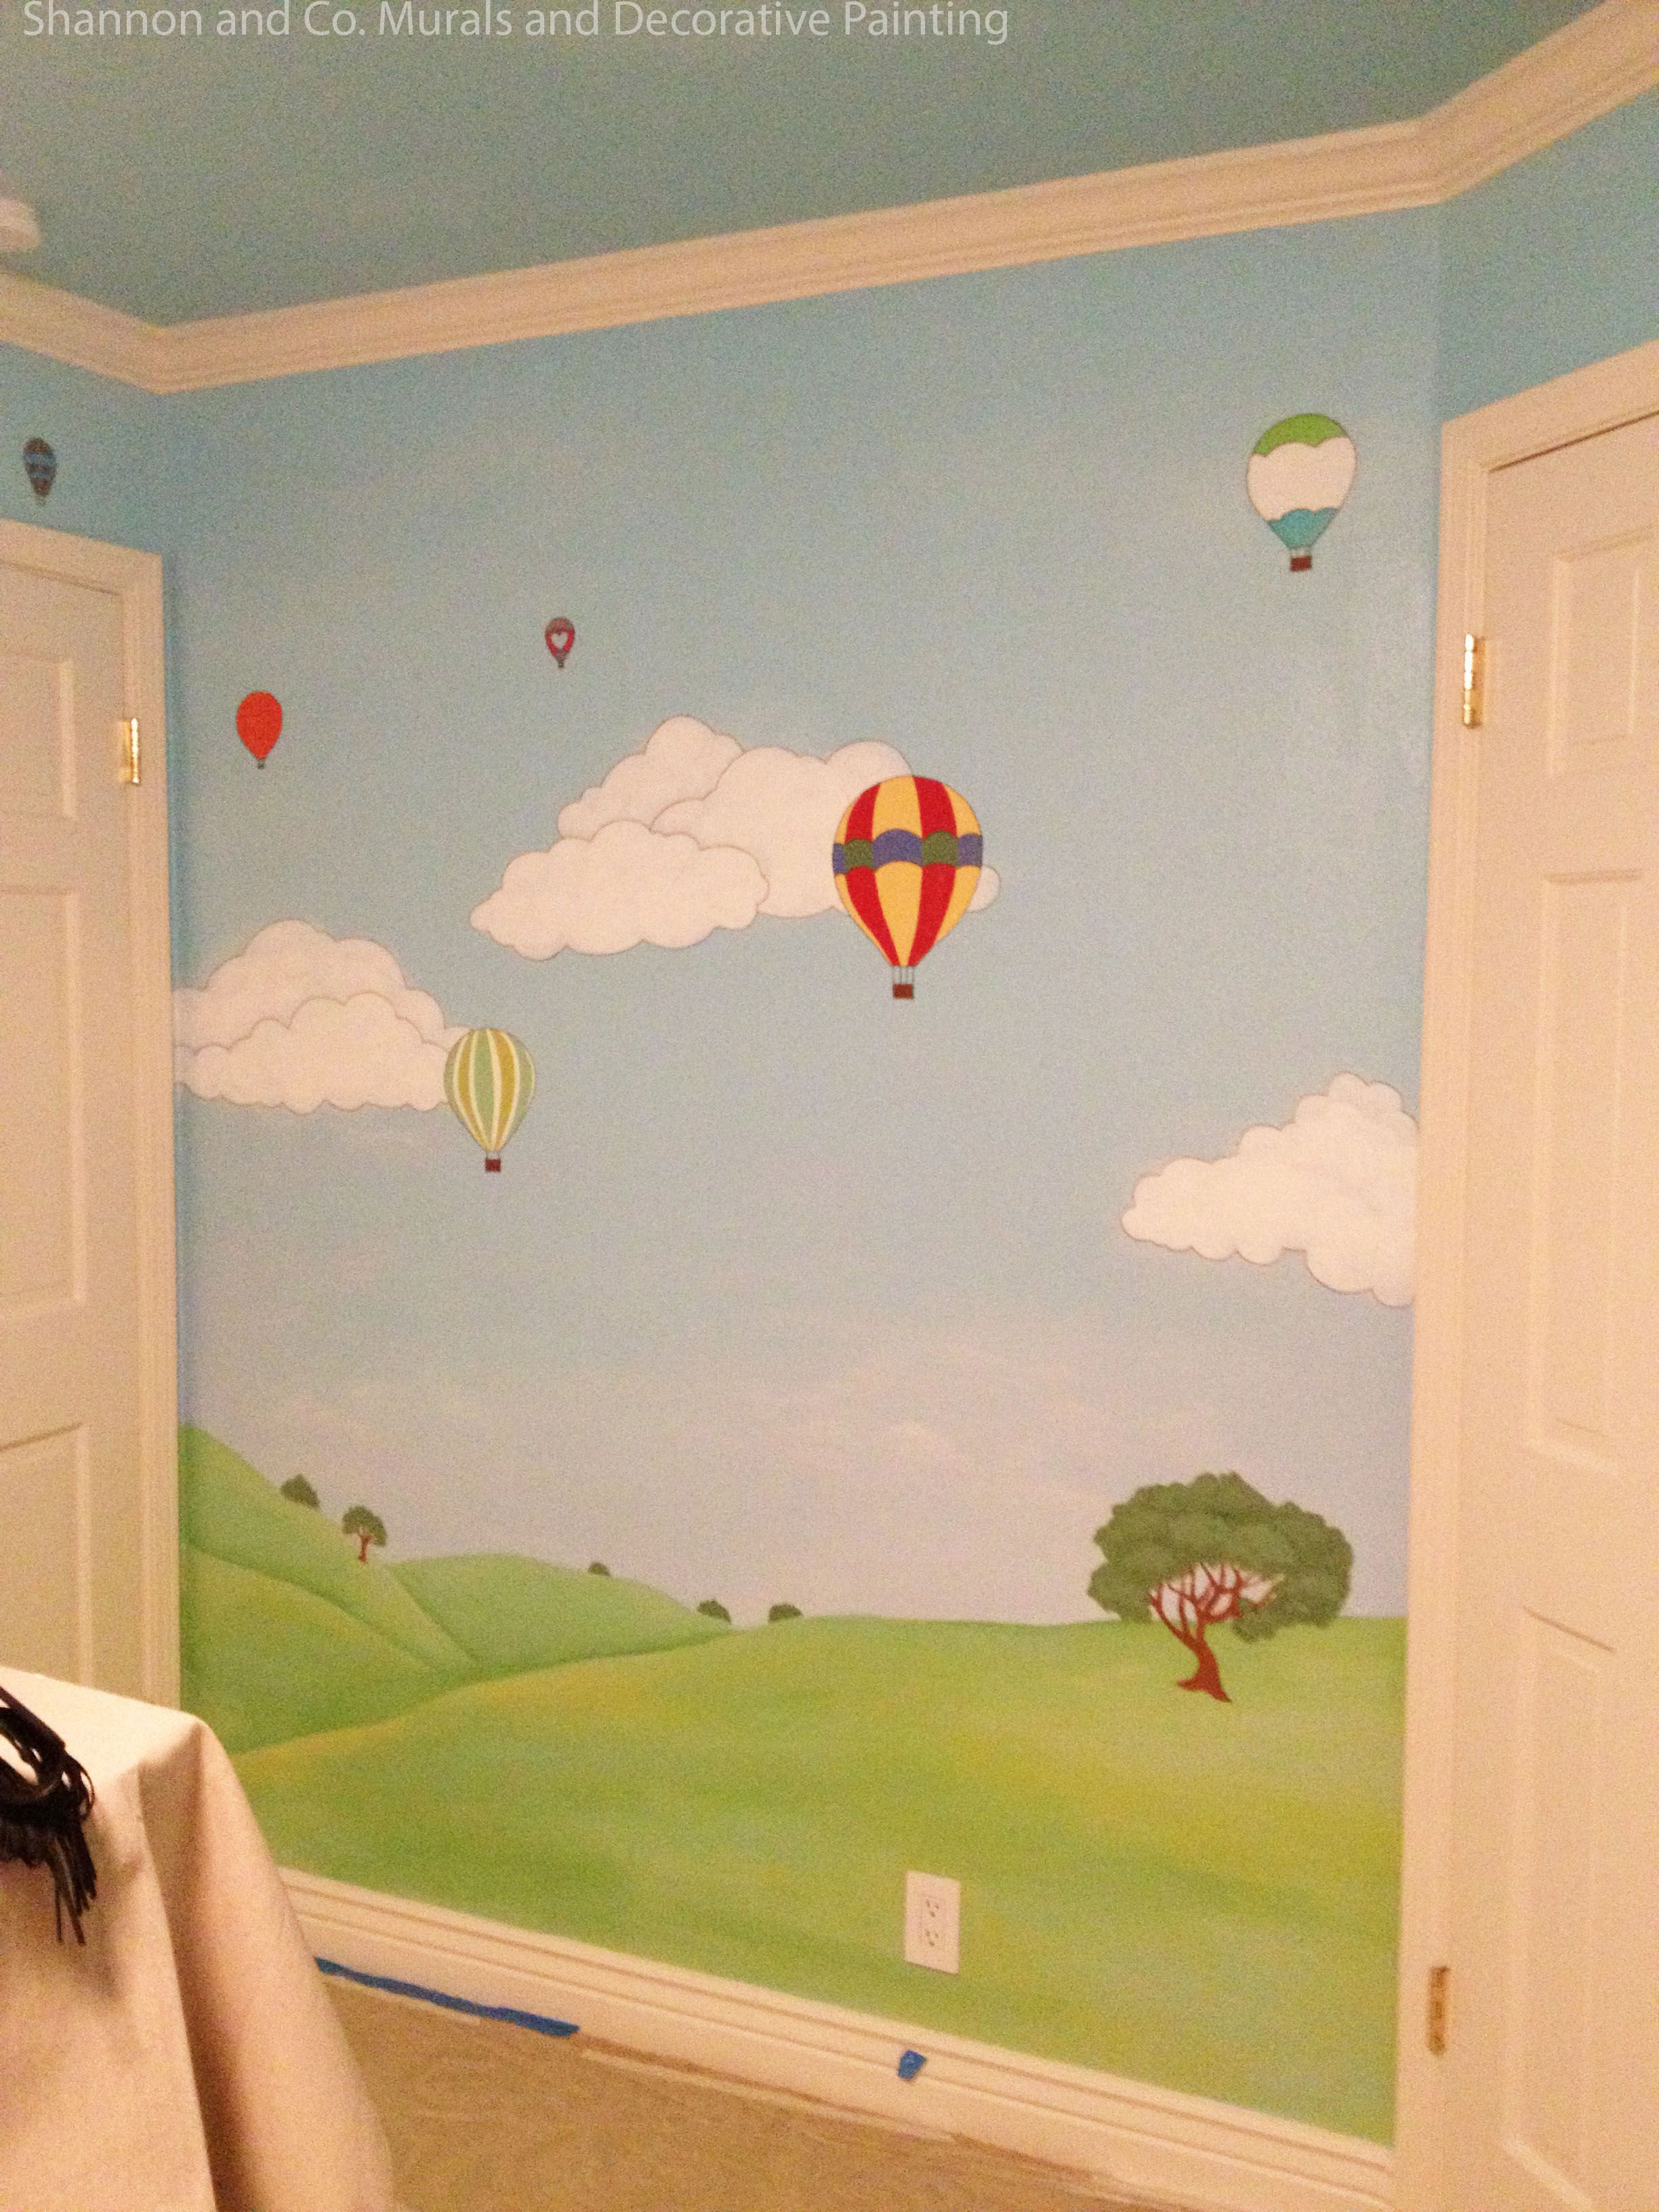 Happy Day Nursery Mural By Shannon Geis